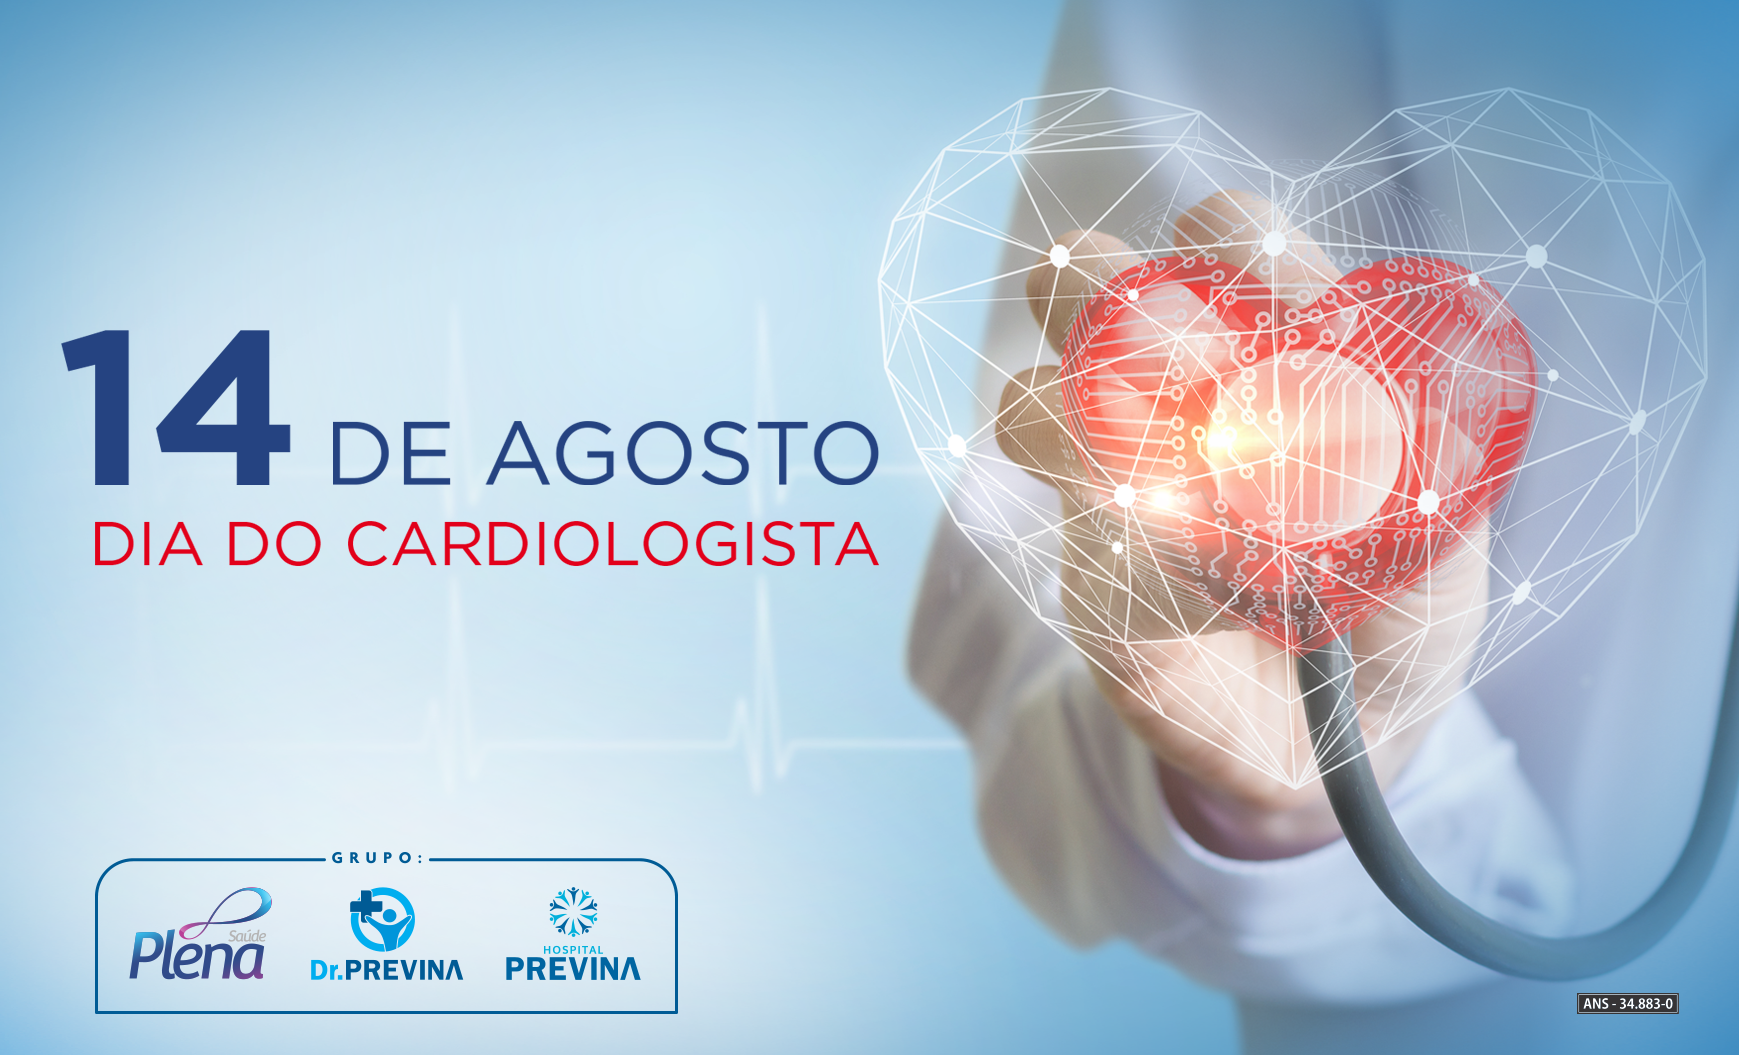 14 de agosto – Dia do Cardiologista